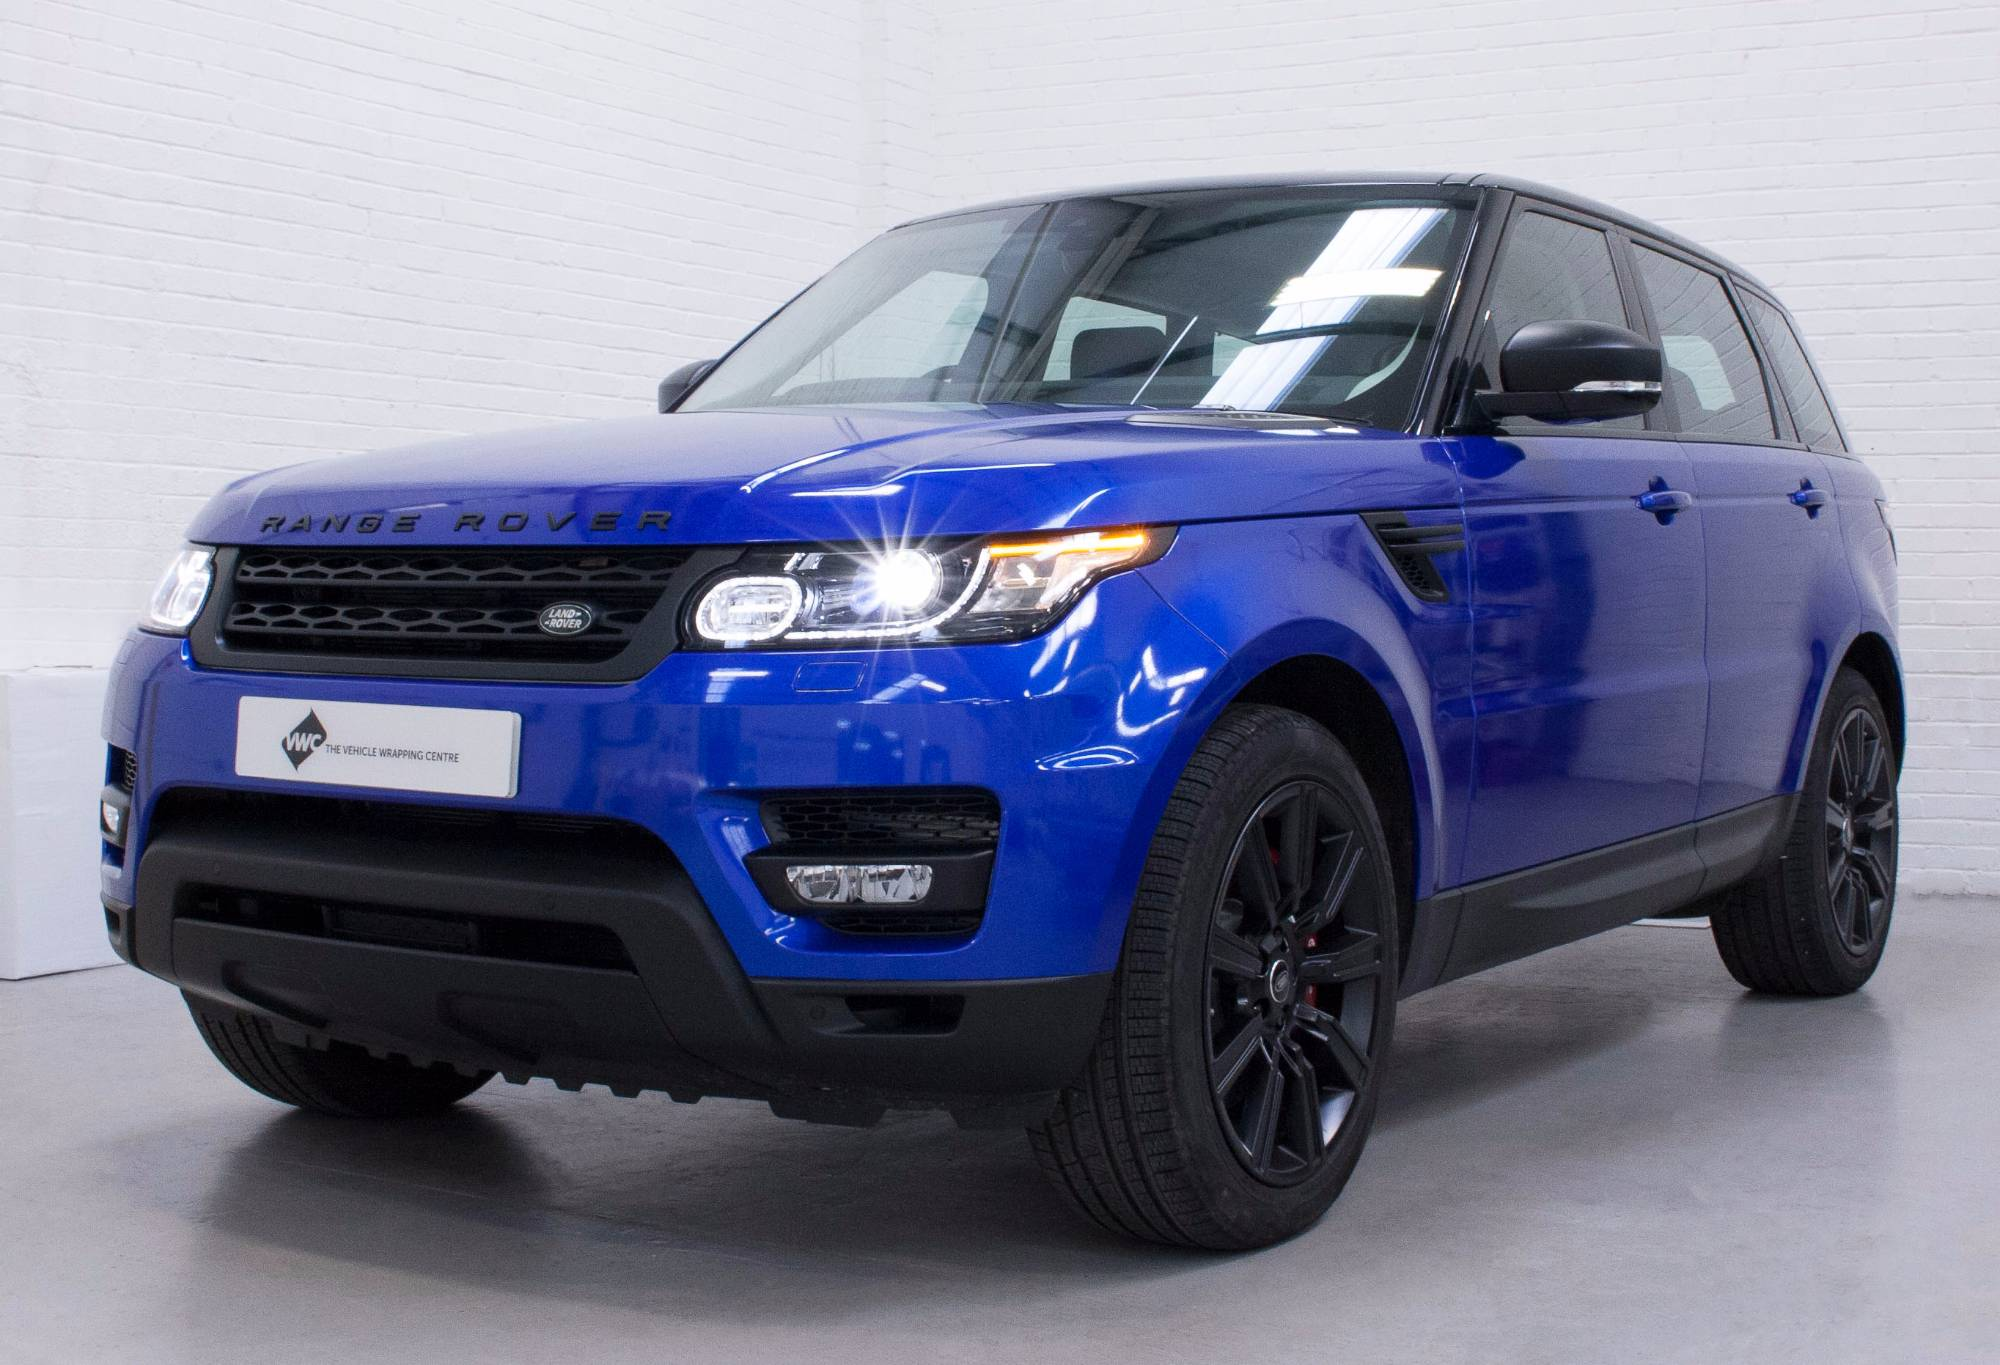 Range Rover Sport 3M Gloss Cosmic Blue Personal Vehicle Wrap Project